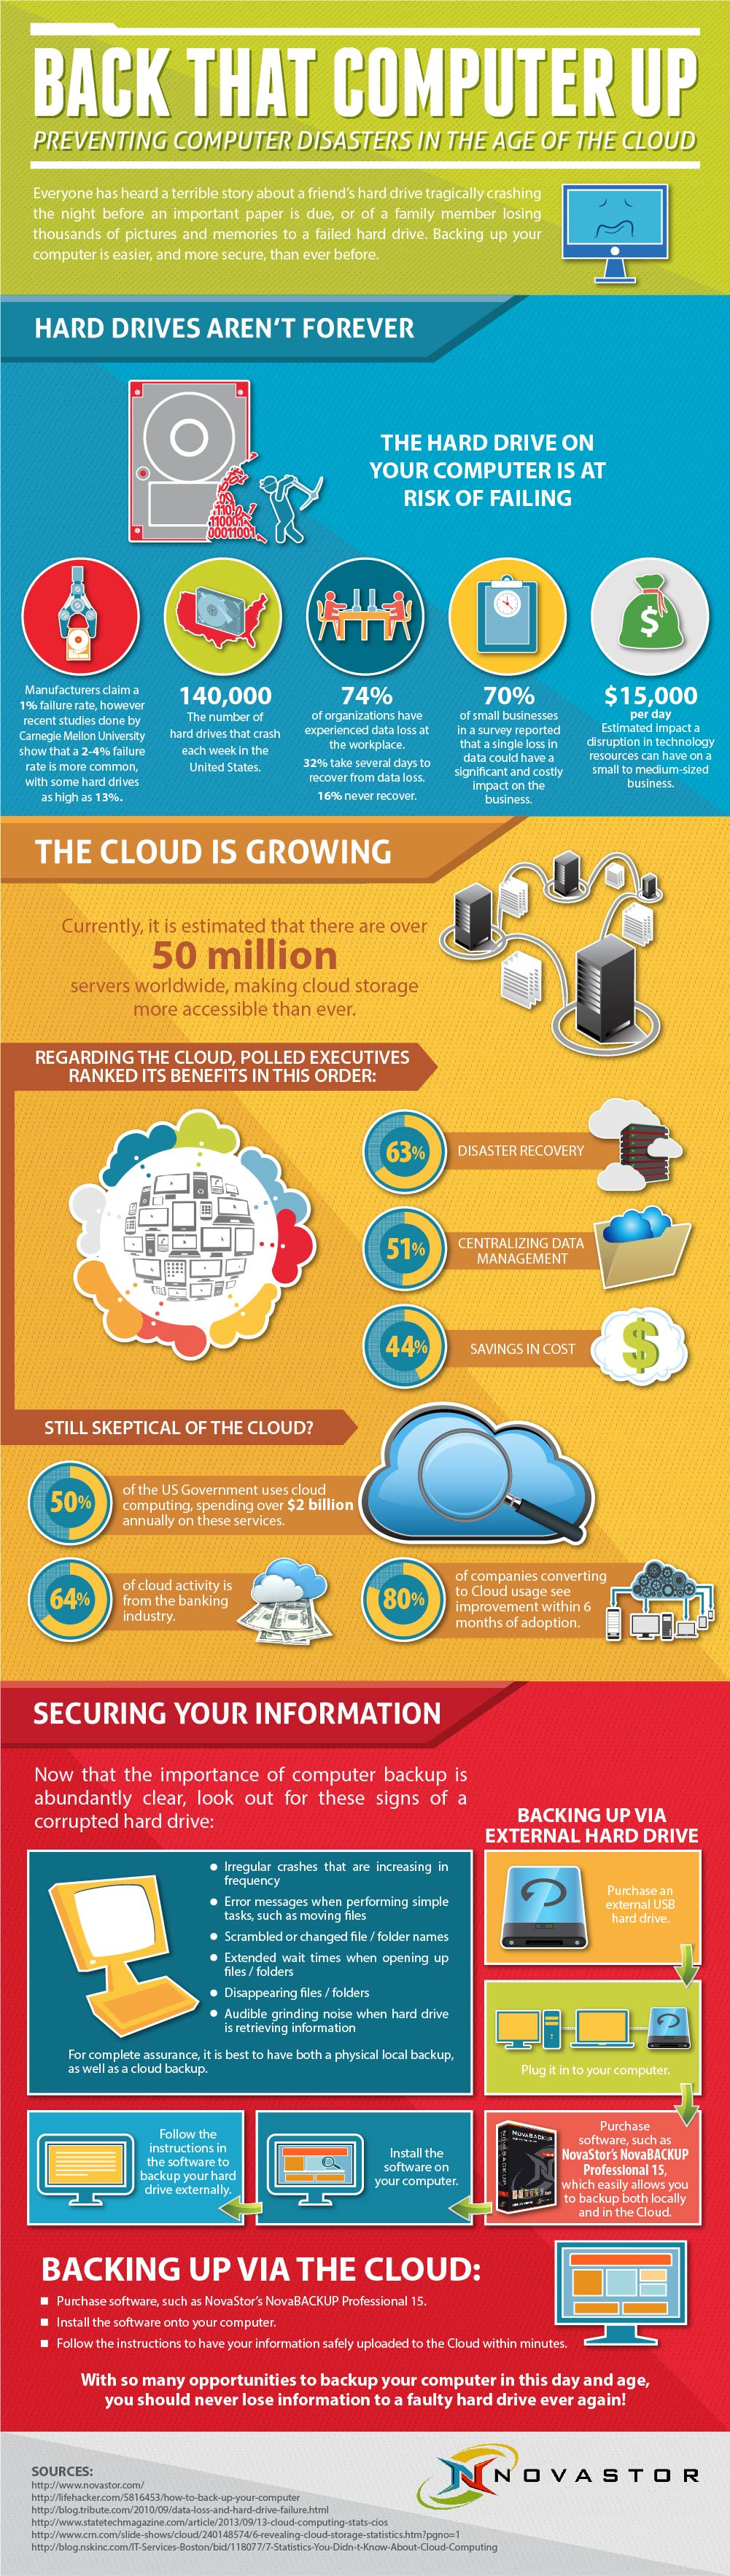 Preventing Computer Disasters In The Age Of The Cloud - Image 1